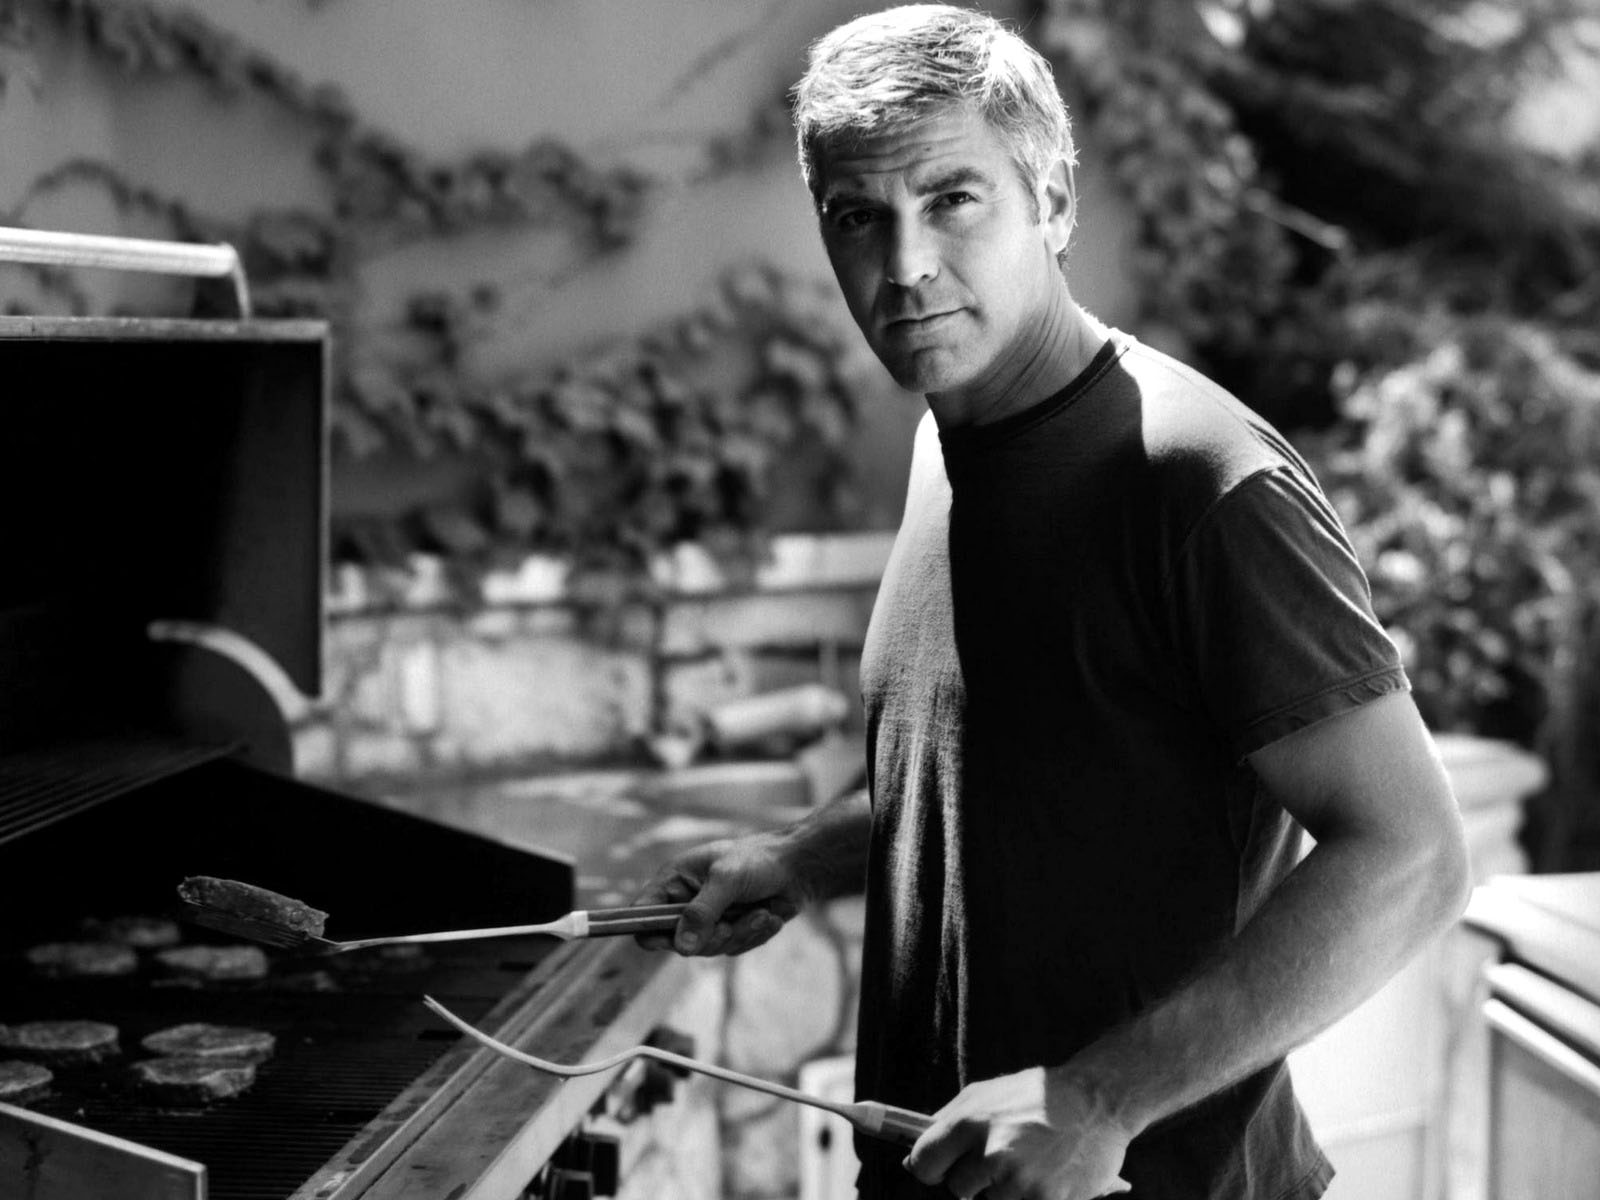 Download George Clooney Making Barbecue Desktop Wallpaper 1063 1600x1200